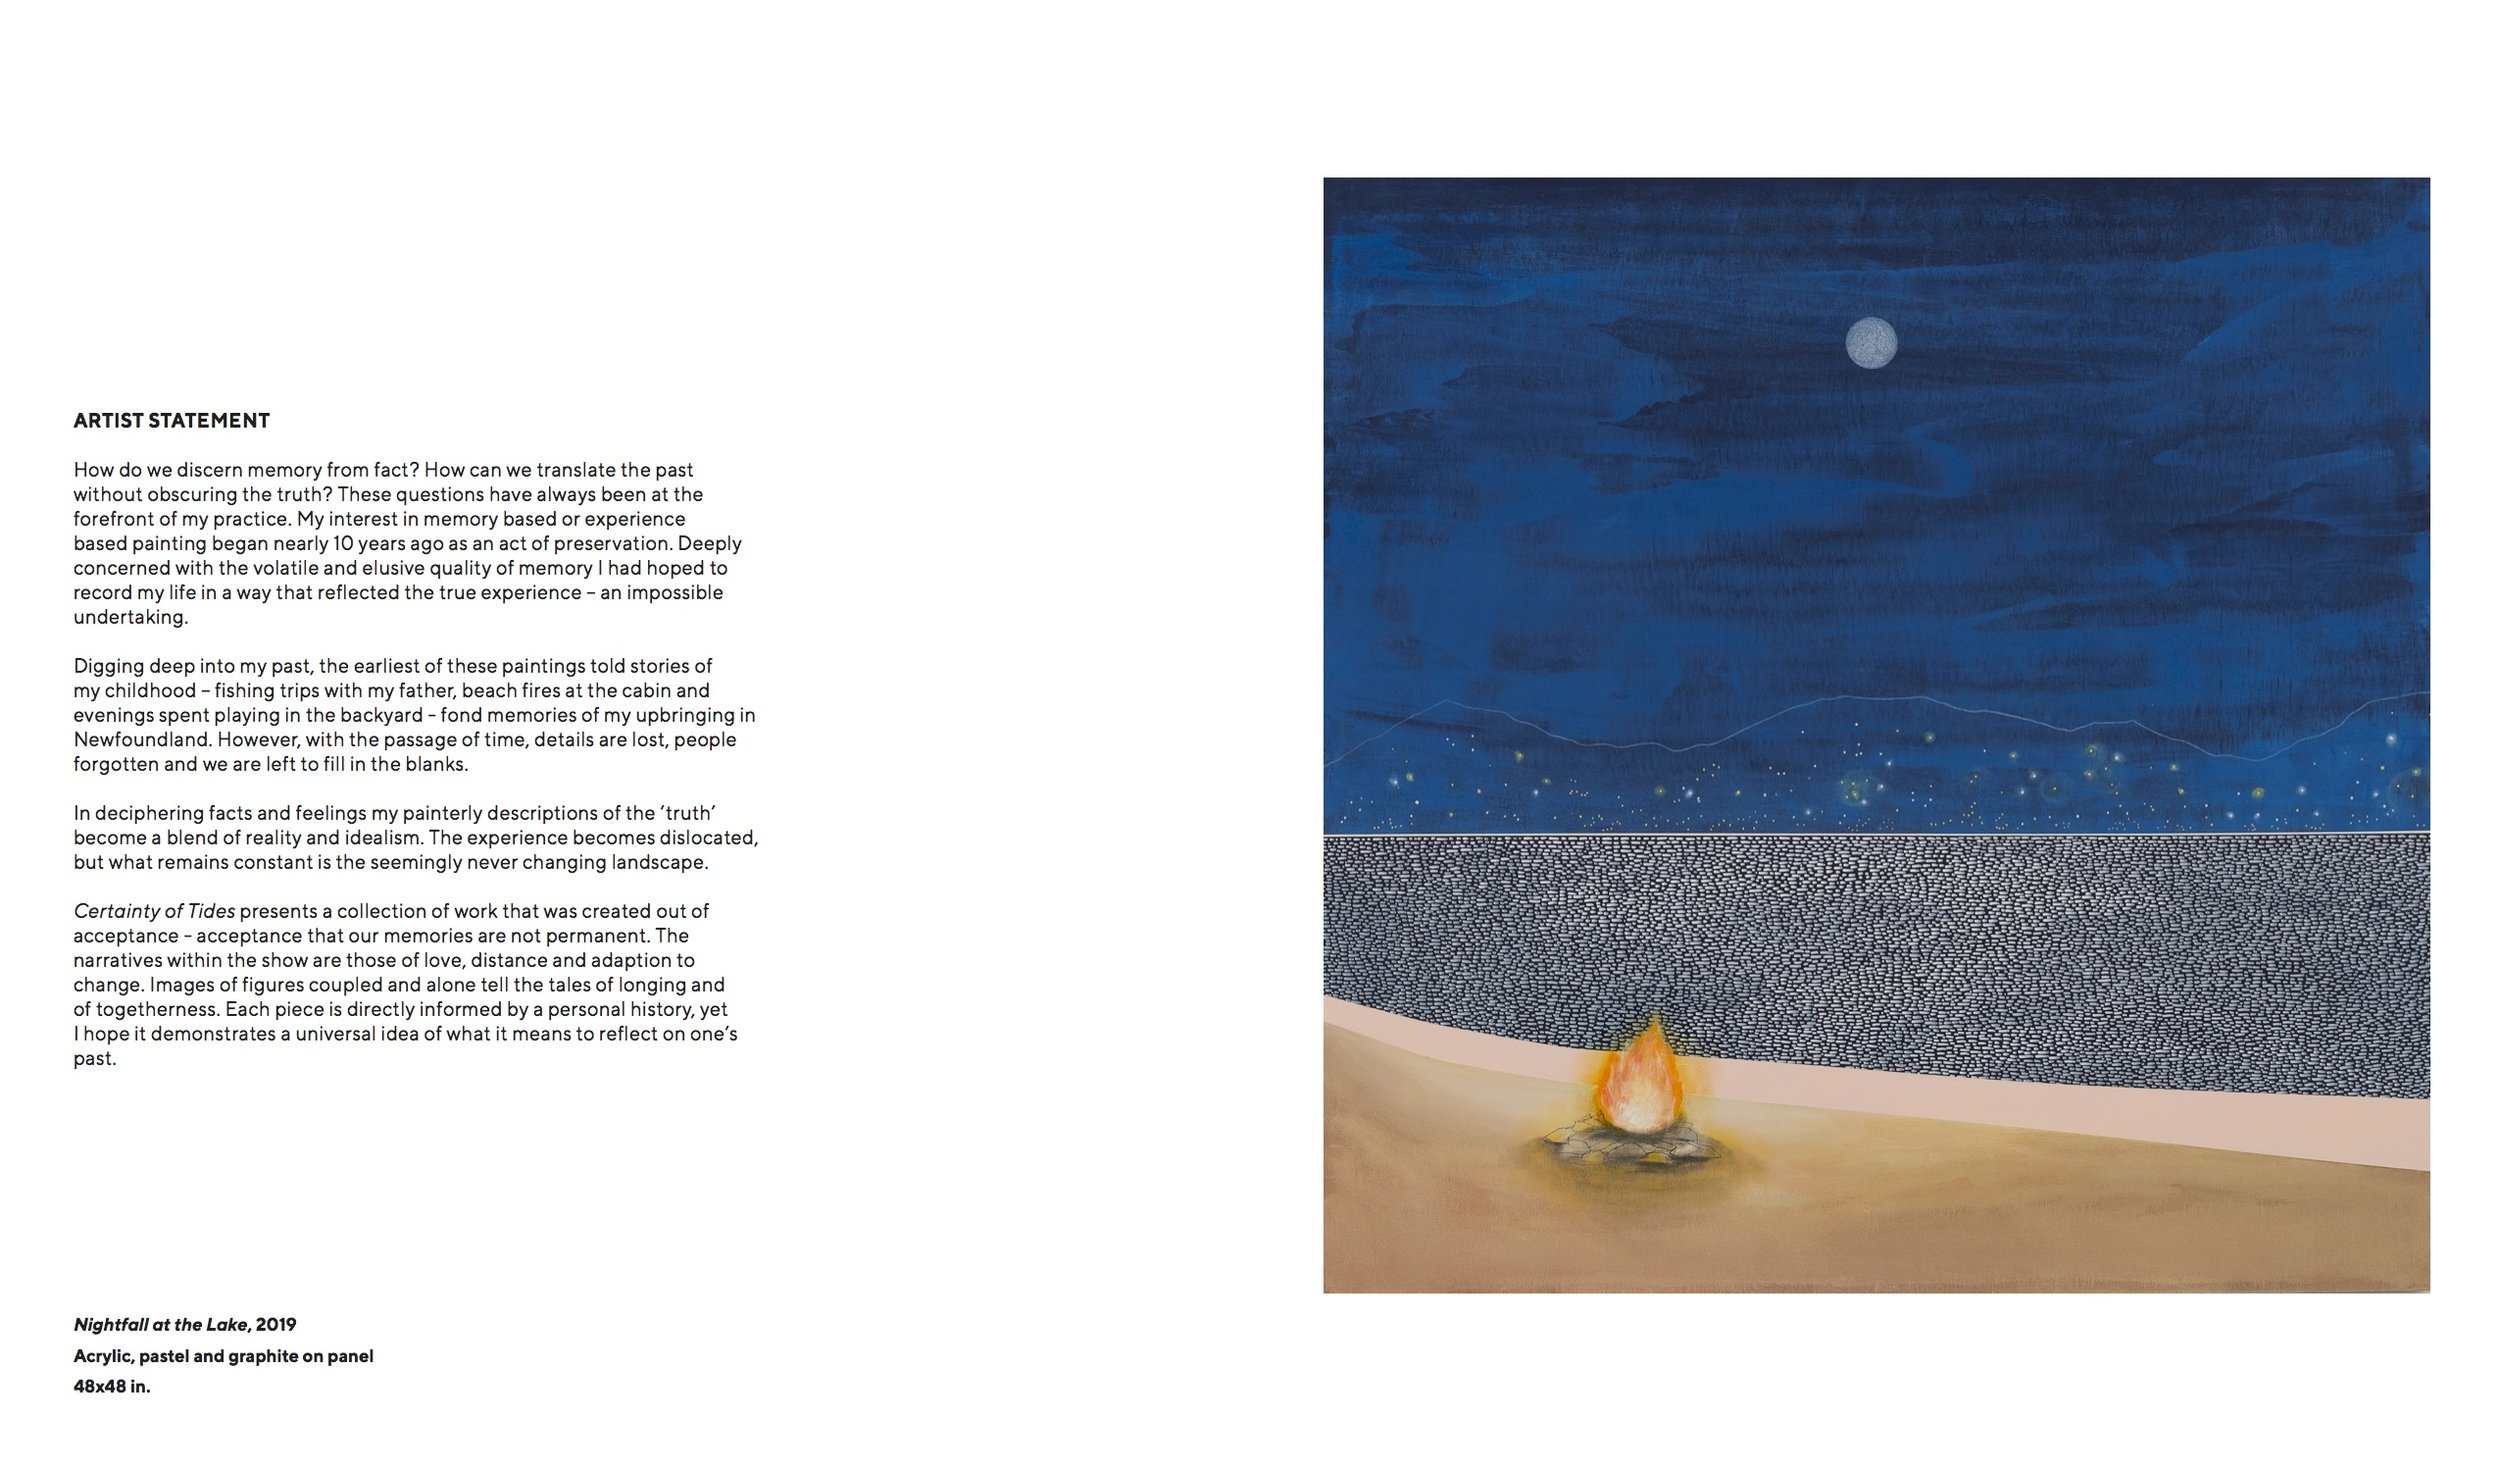 Catalogue for Mike Gough's 'Certainty of Tides'